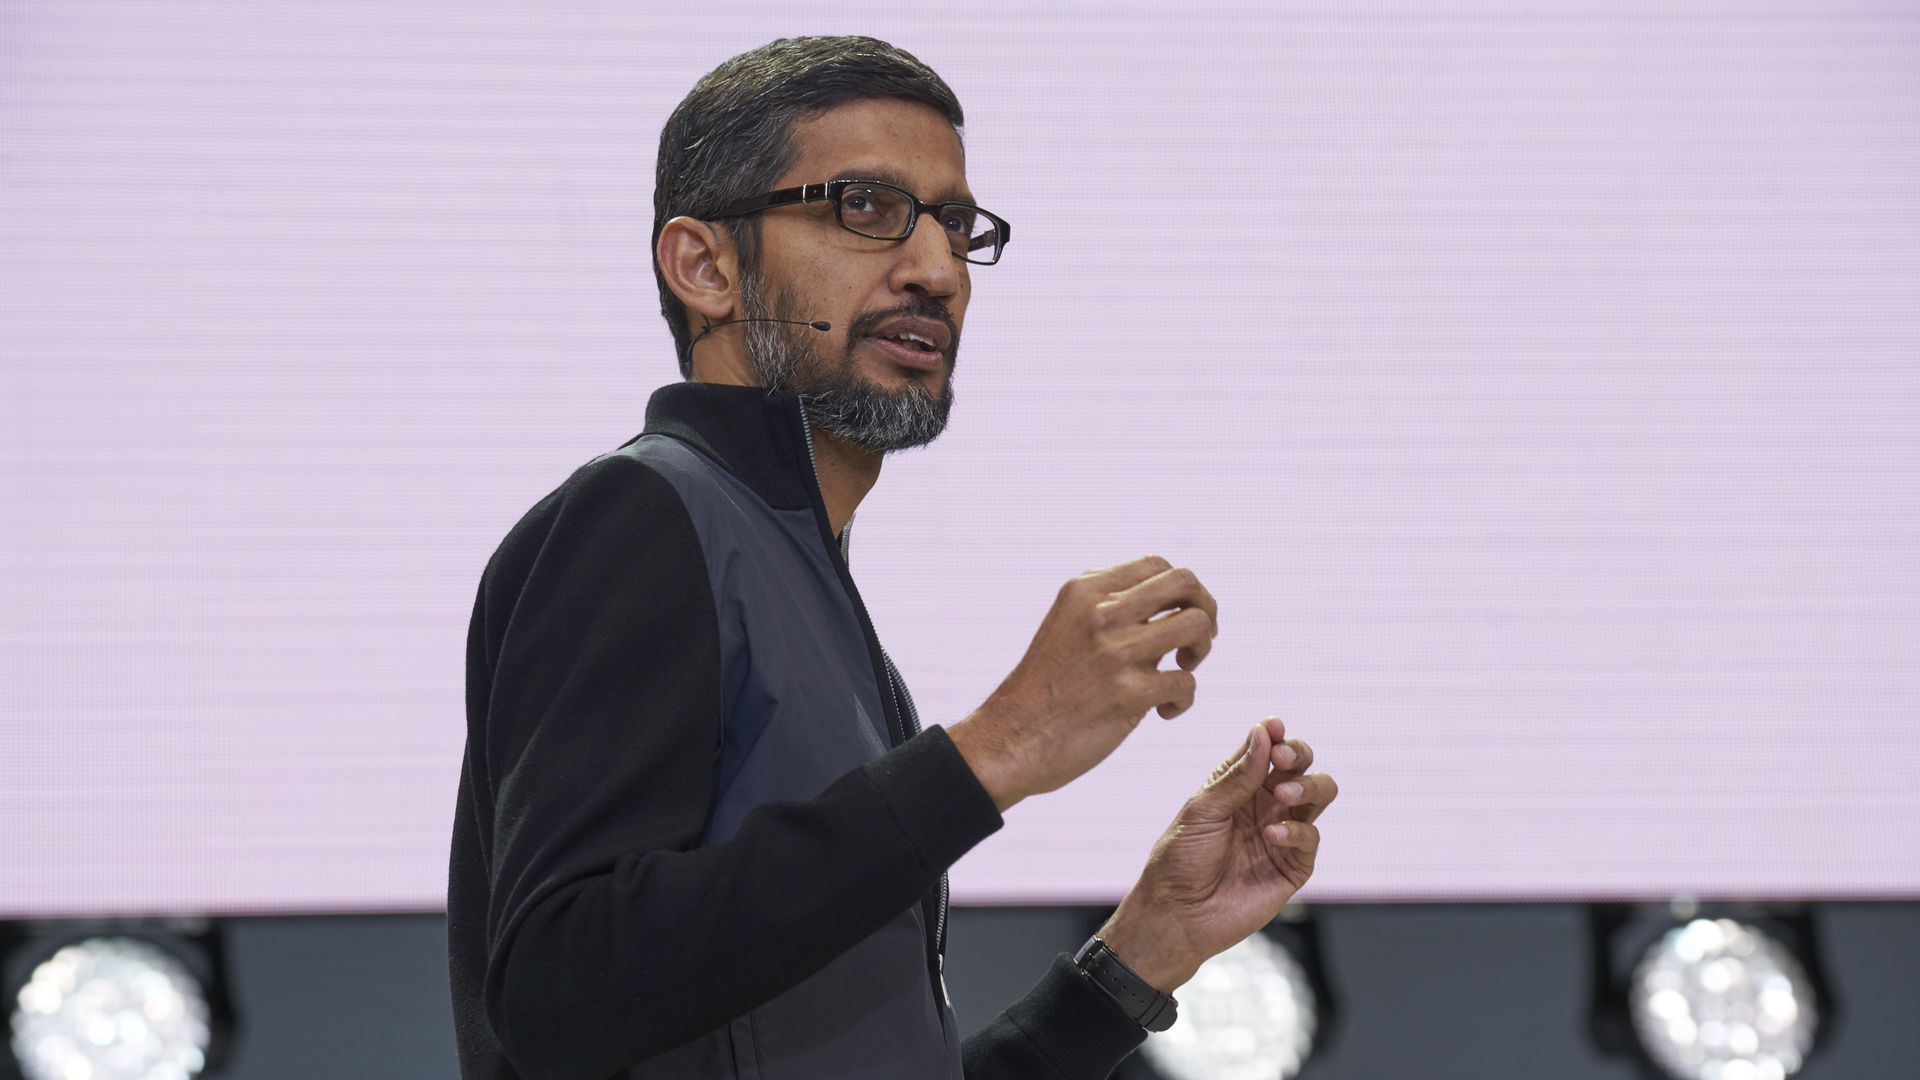 Google CEO Sundar Pichai speaking at I/O 2017